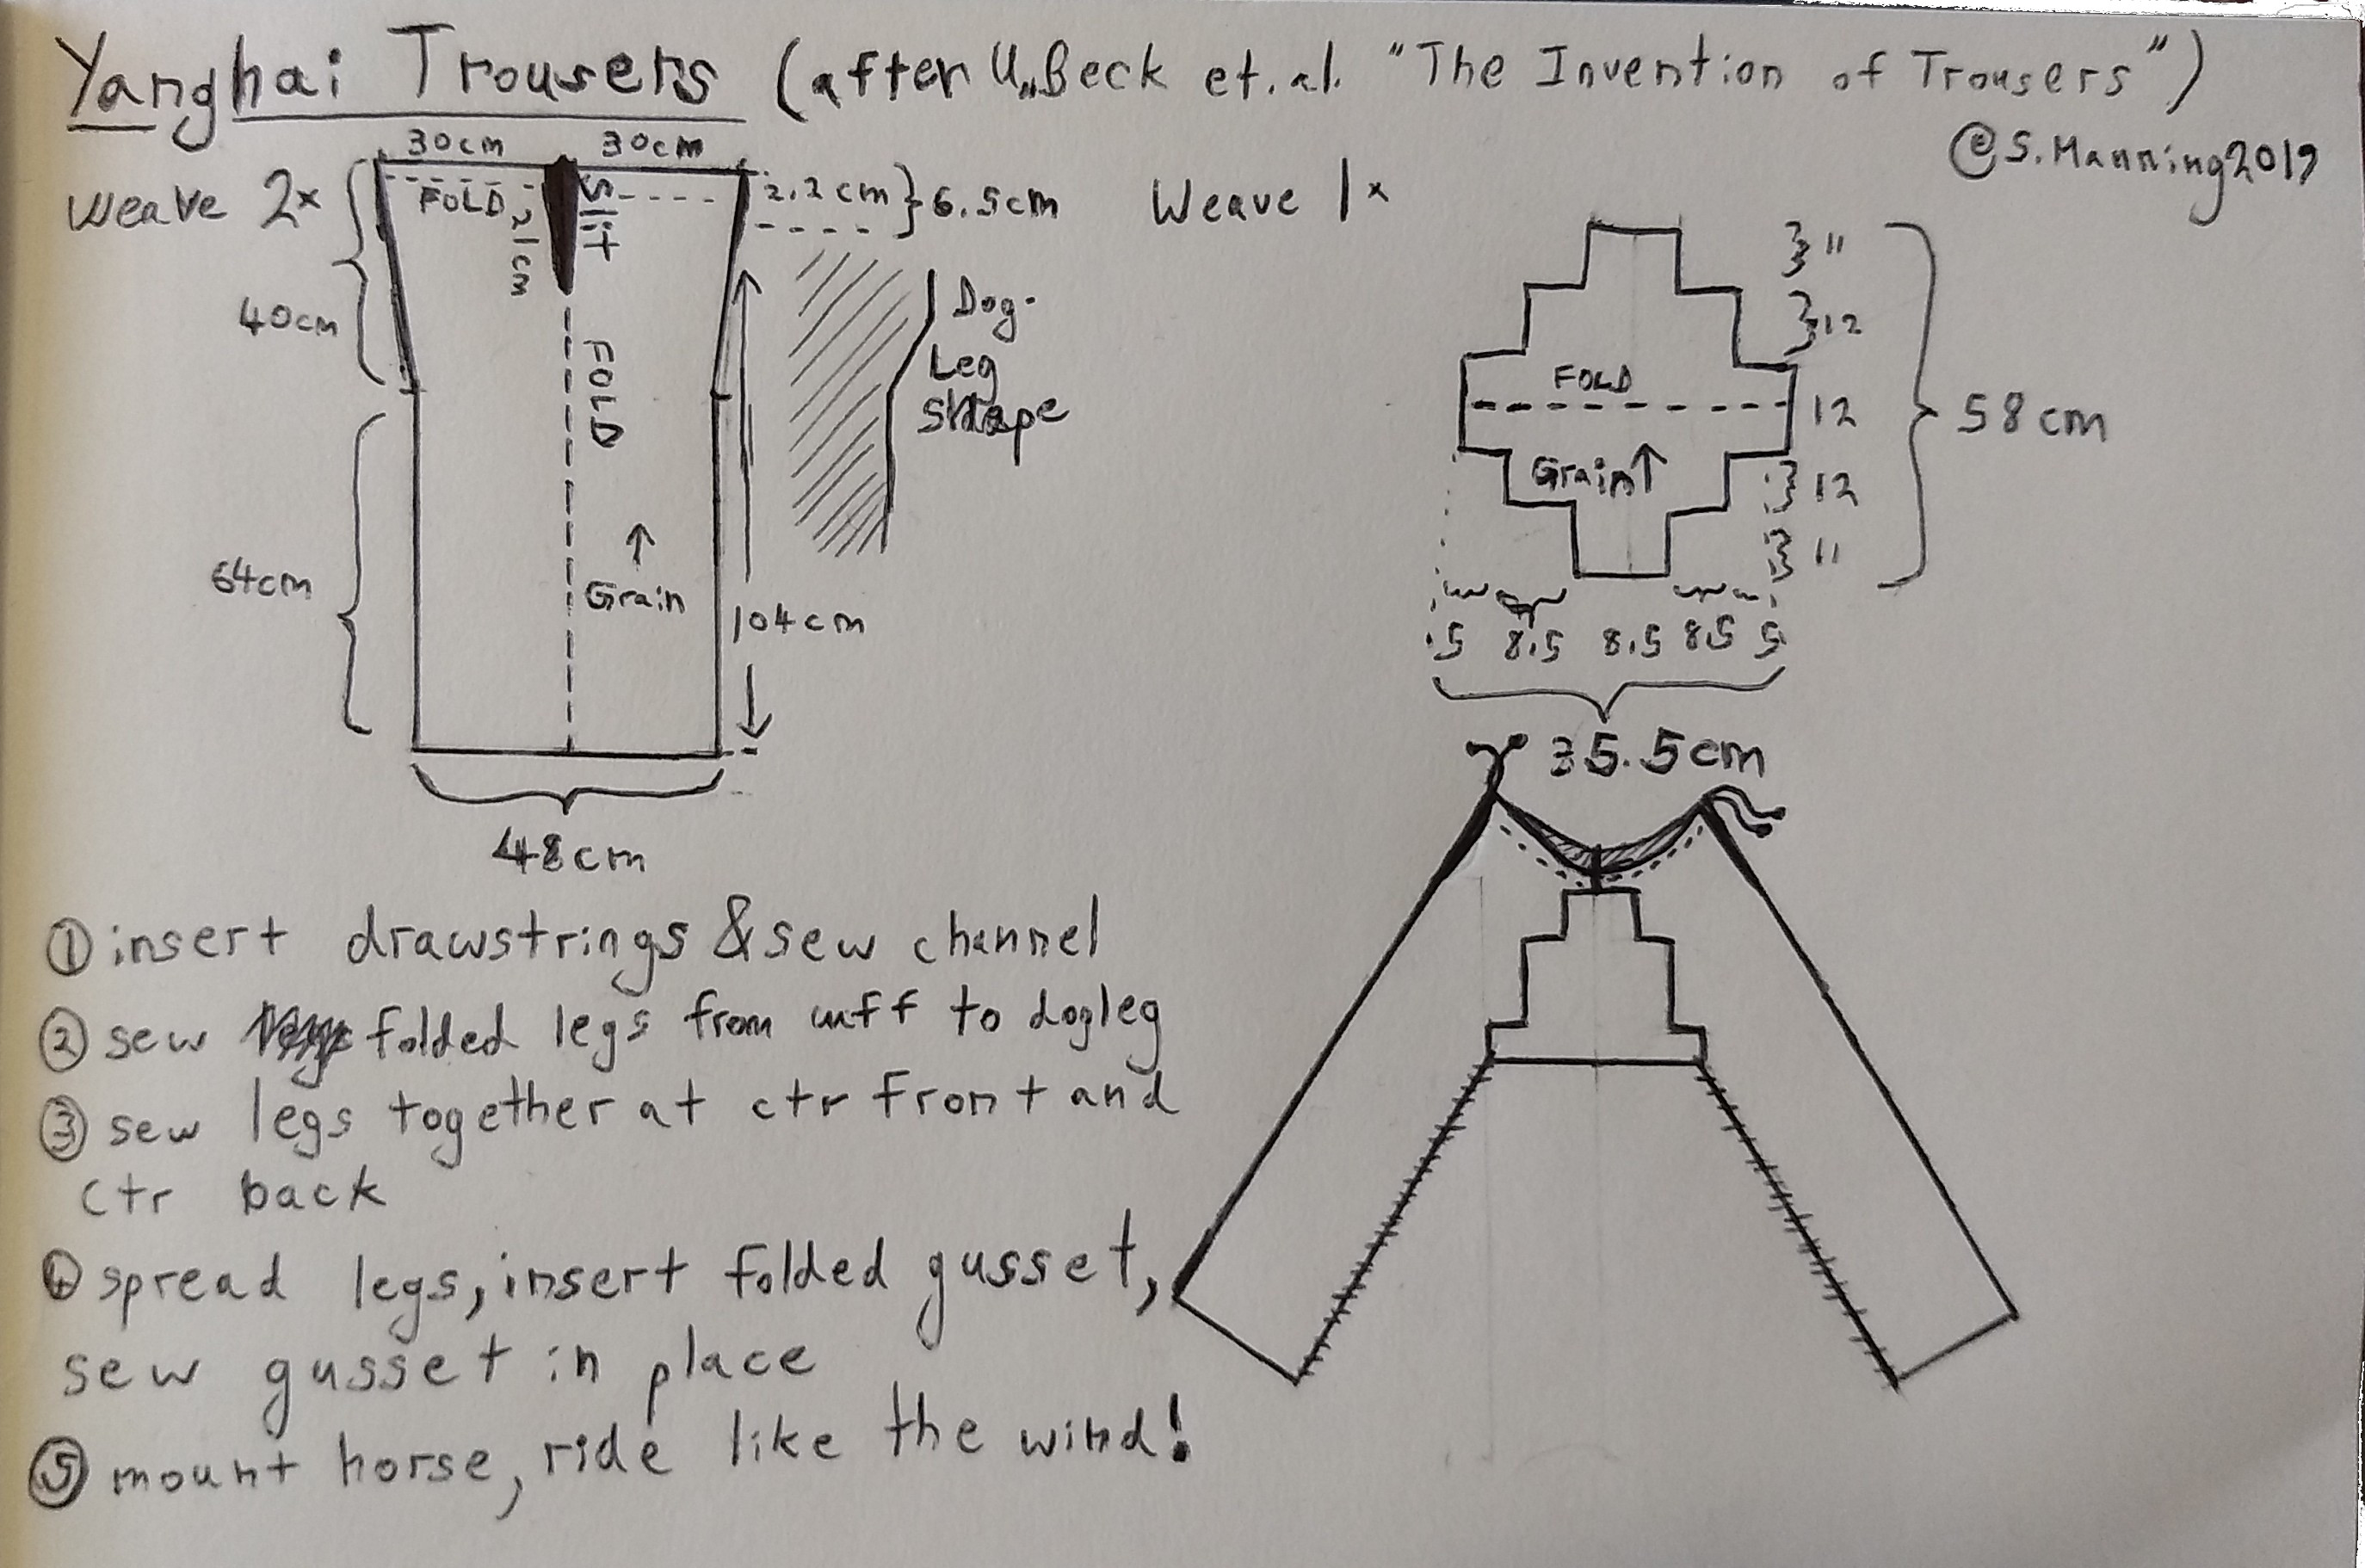 A diagram of trousers made from two roughly rectangular leg pieces and a diamond-shaped gusset inserted between the legs